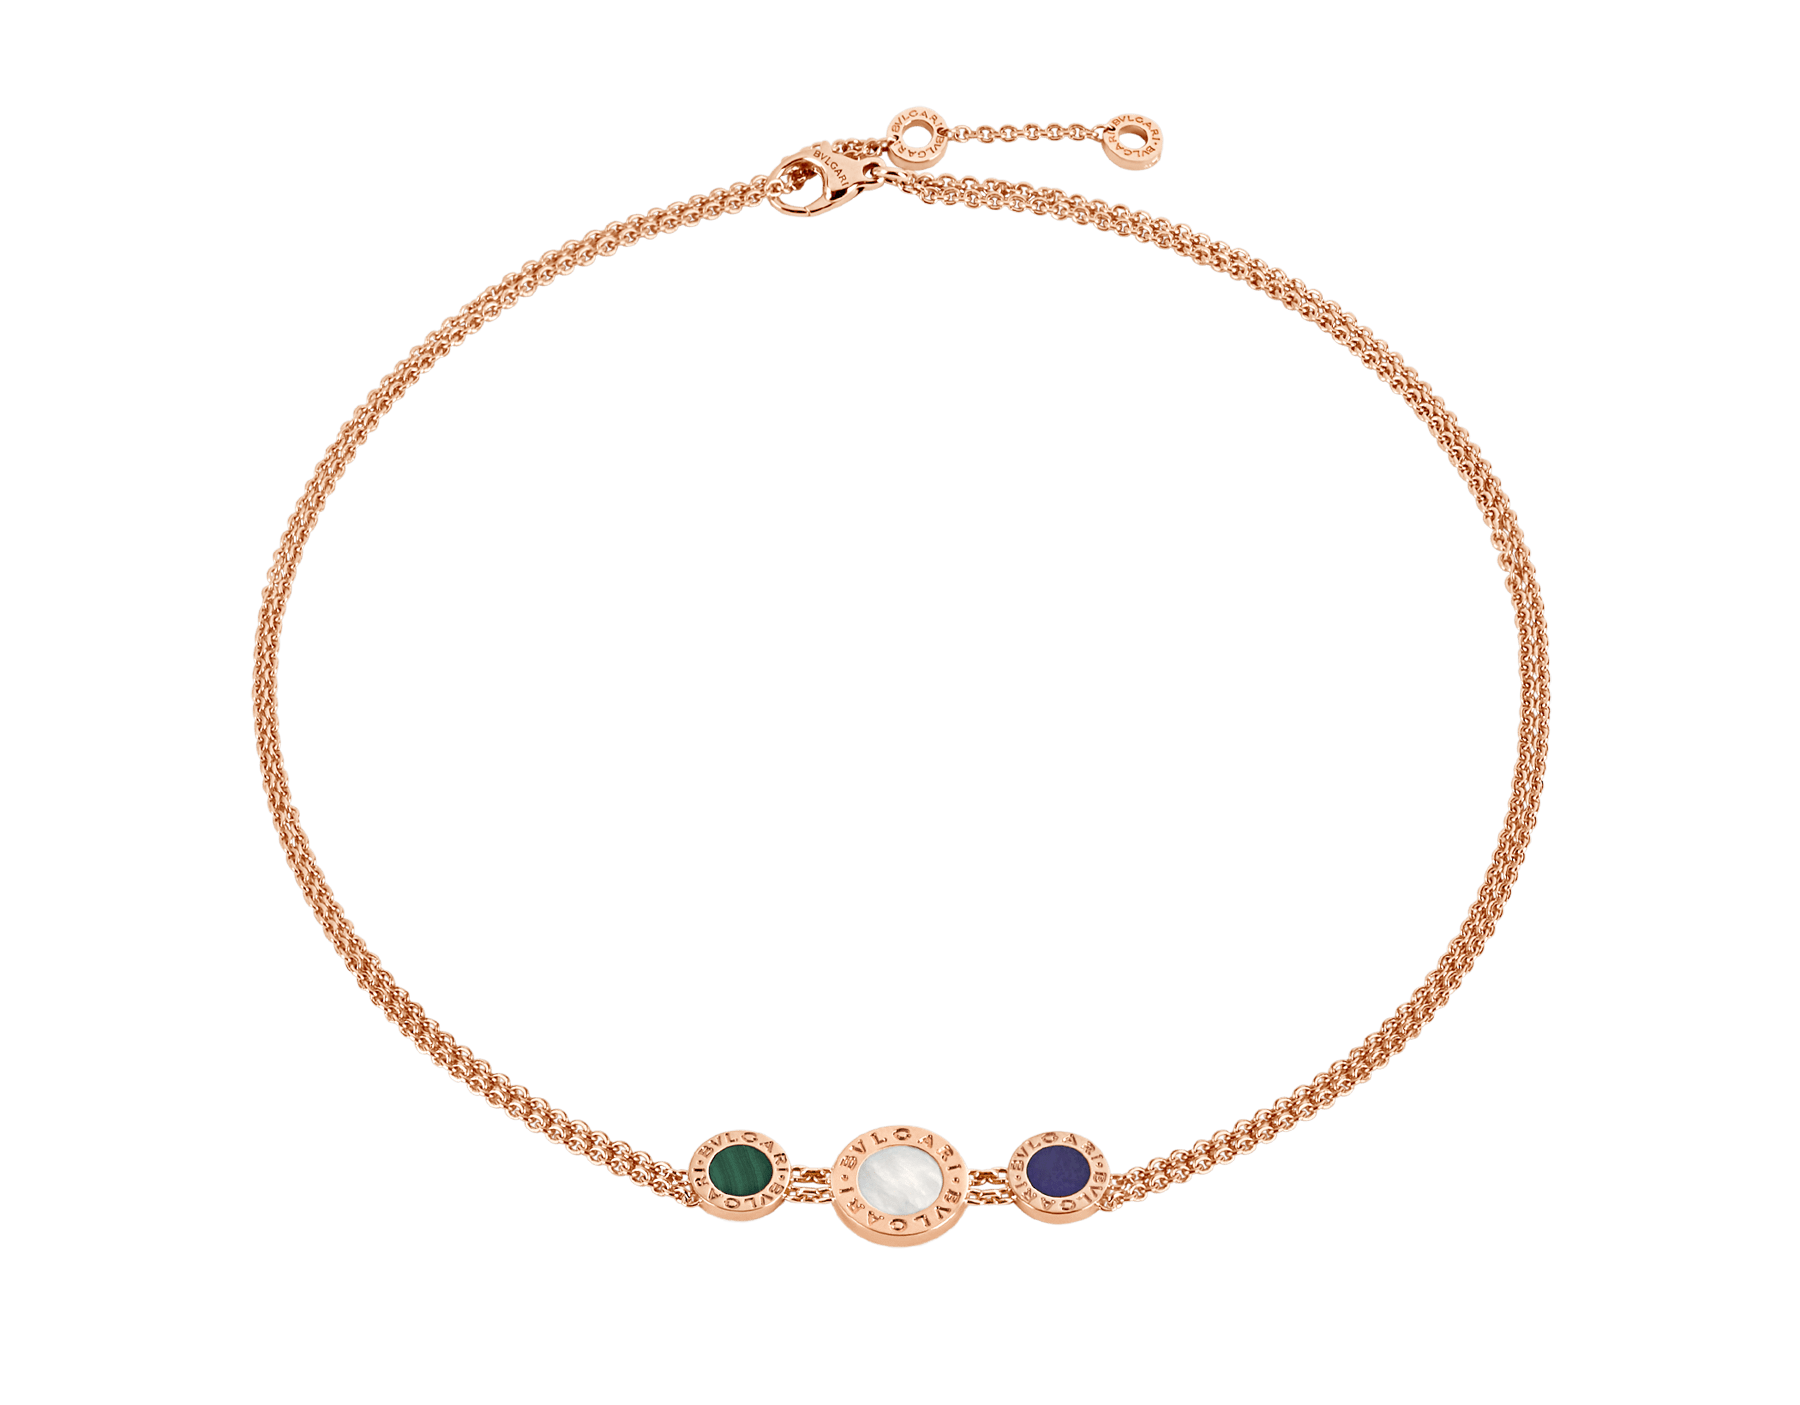 BVLGARI BVLGARI choker necklace in 18 kt rose gold set with malachite, mother-of-pearl and sugilite elements 356649 image 1